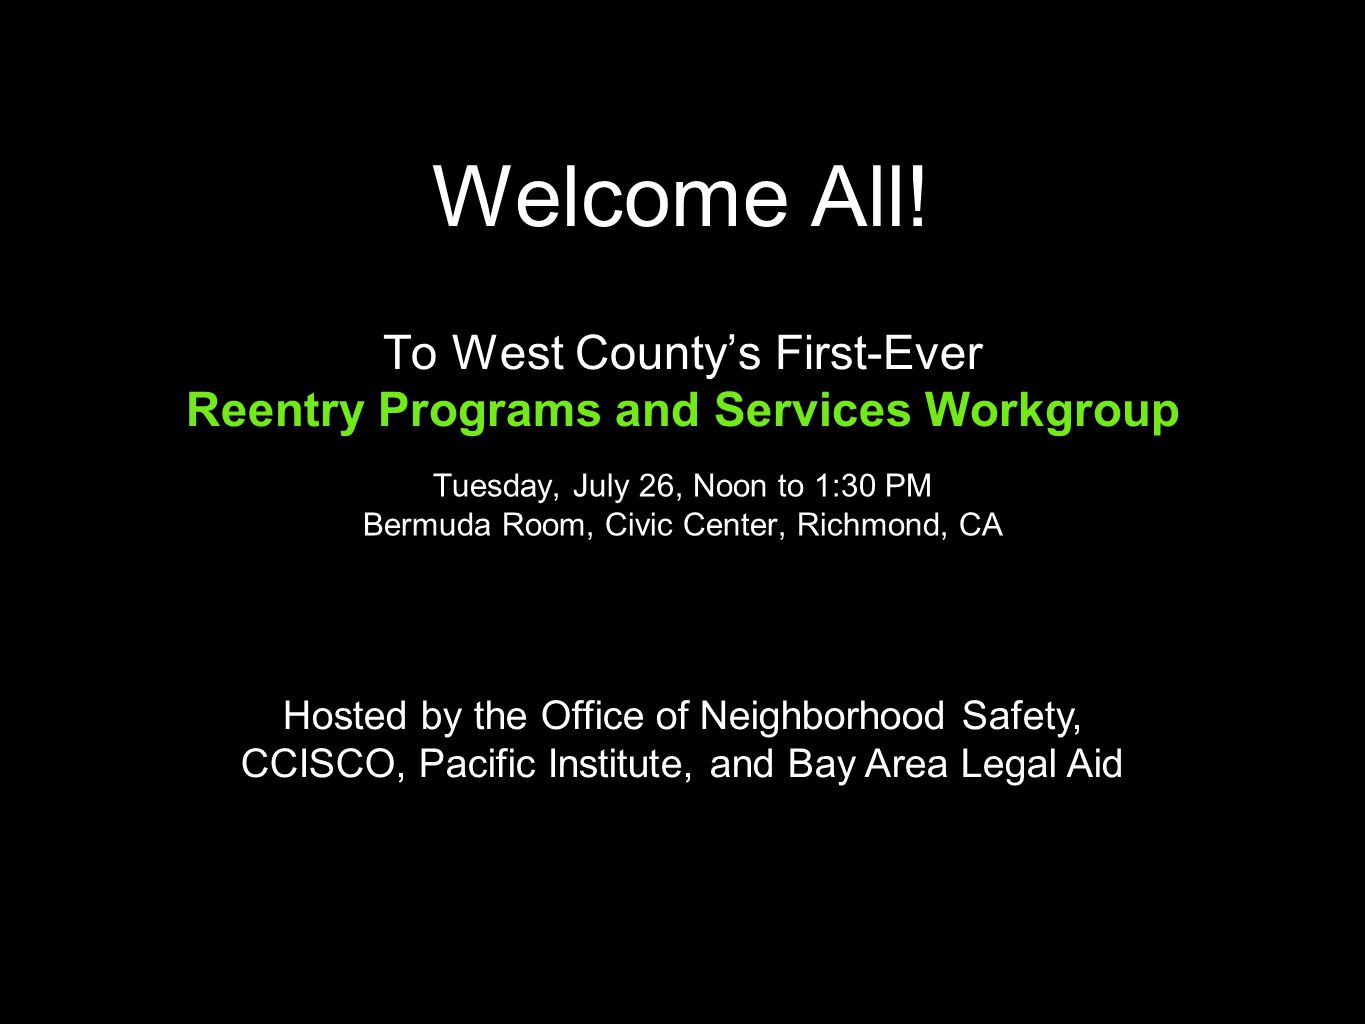 Welcome All! To West County's First-Ever Reentry Programs and Services Workgroup Tuesday, July 26, Noon to 1:30 PM Bermuda Room, Civic Center, Richmon